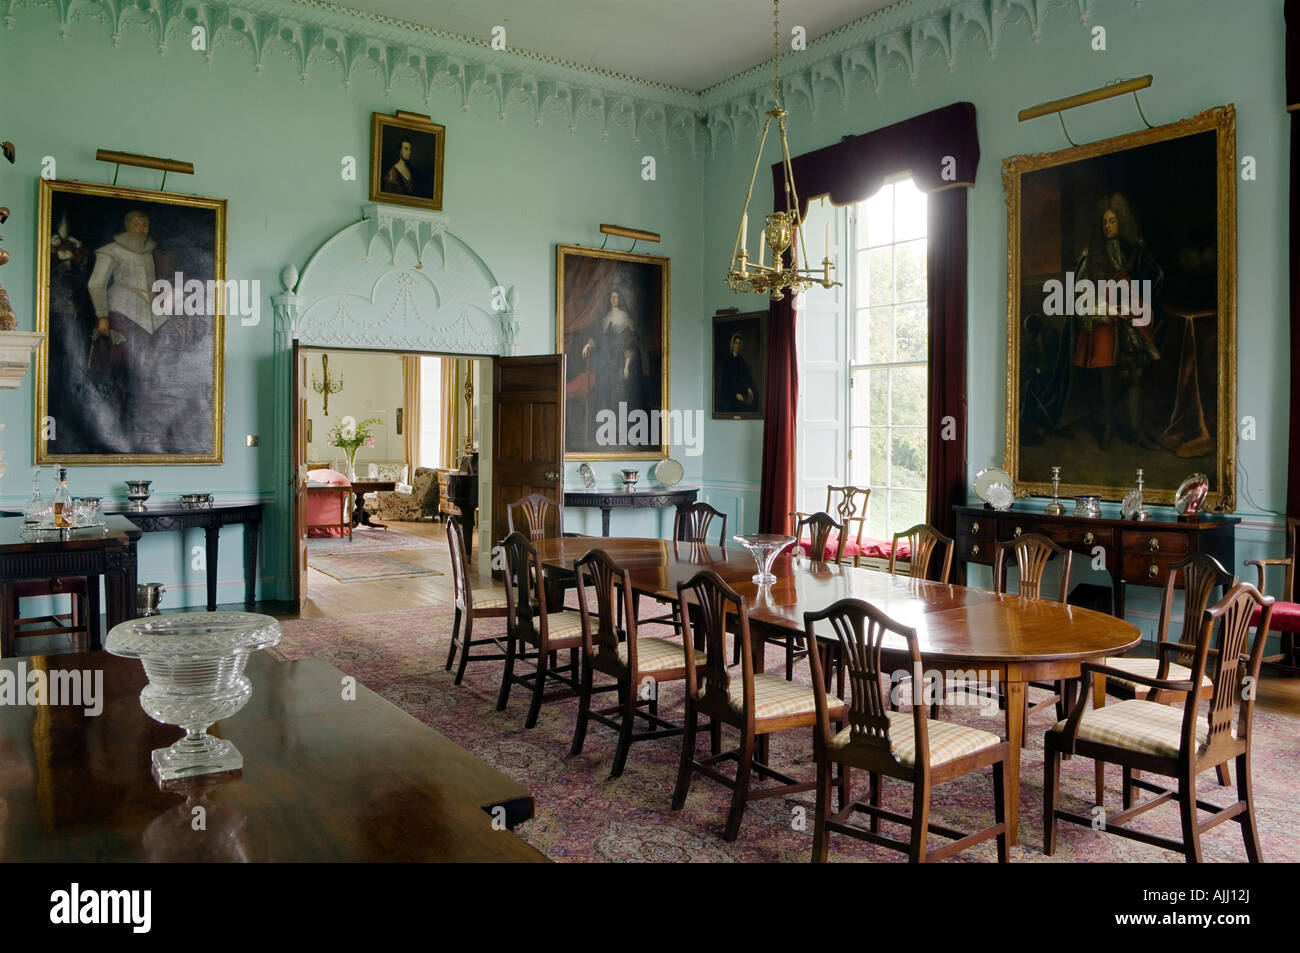 Dining Room With Oil Paintings And Double Door In 17th Century Irish Castle